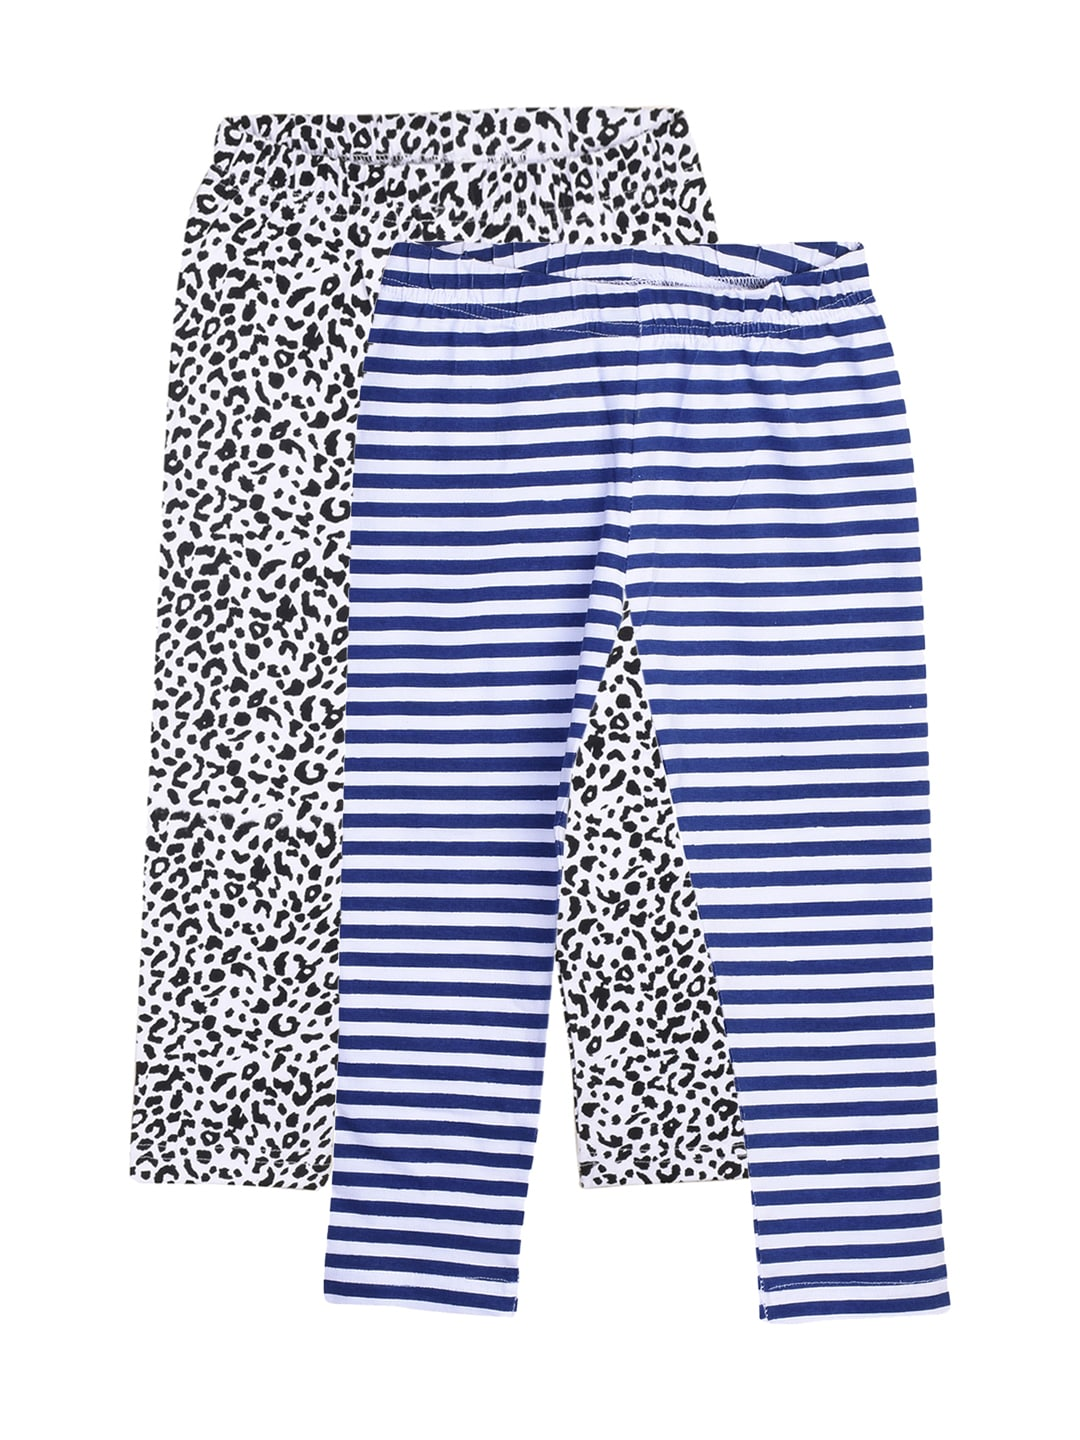 naughty ninos Girls Pack of 2 Printed Capris